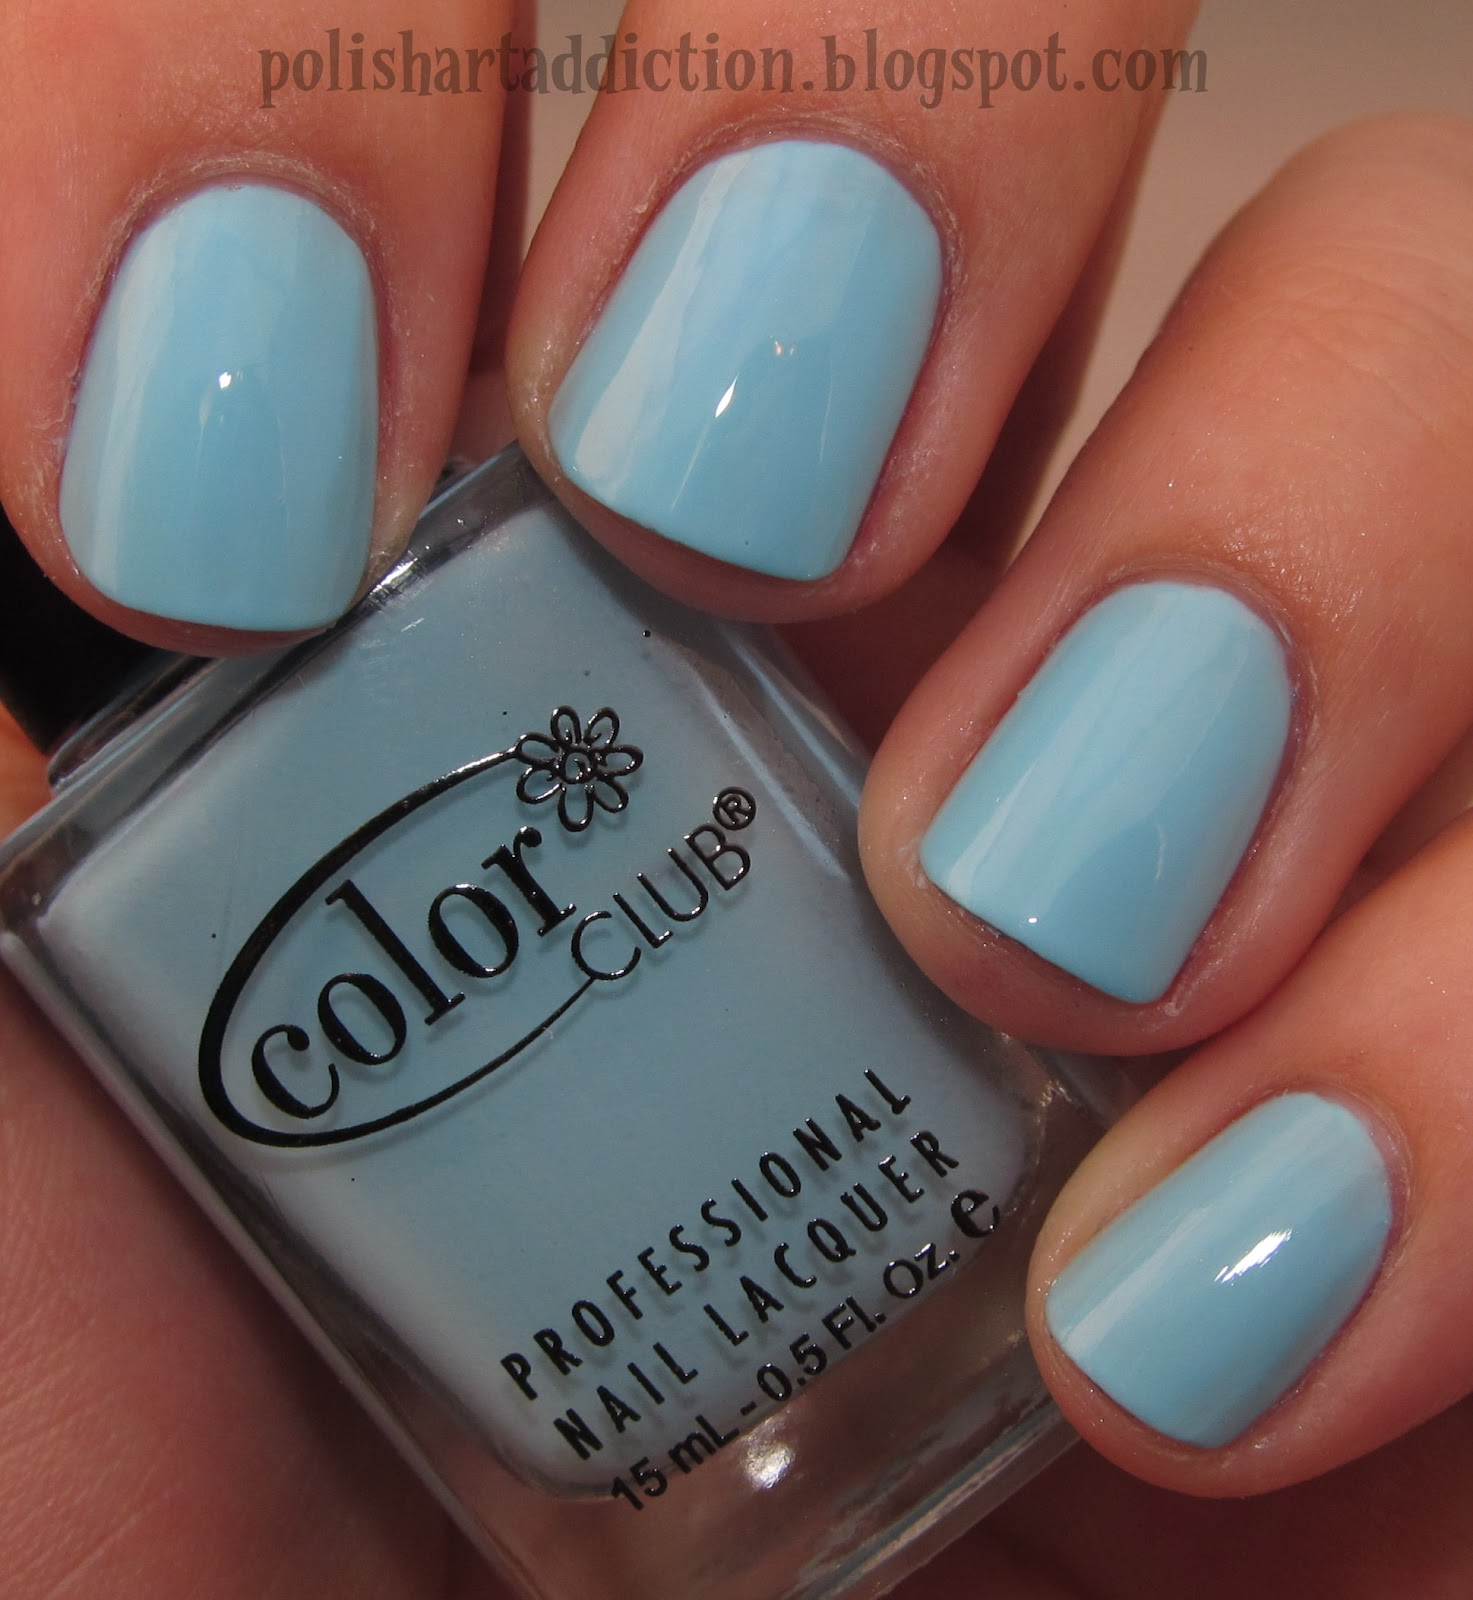 Color Club - Factory Girl